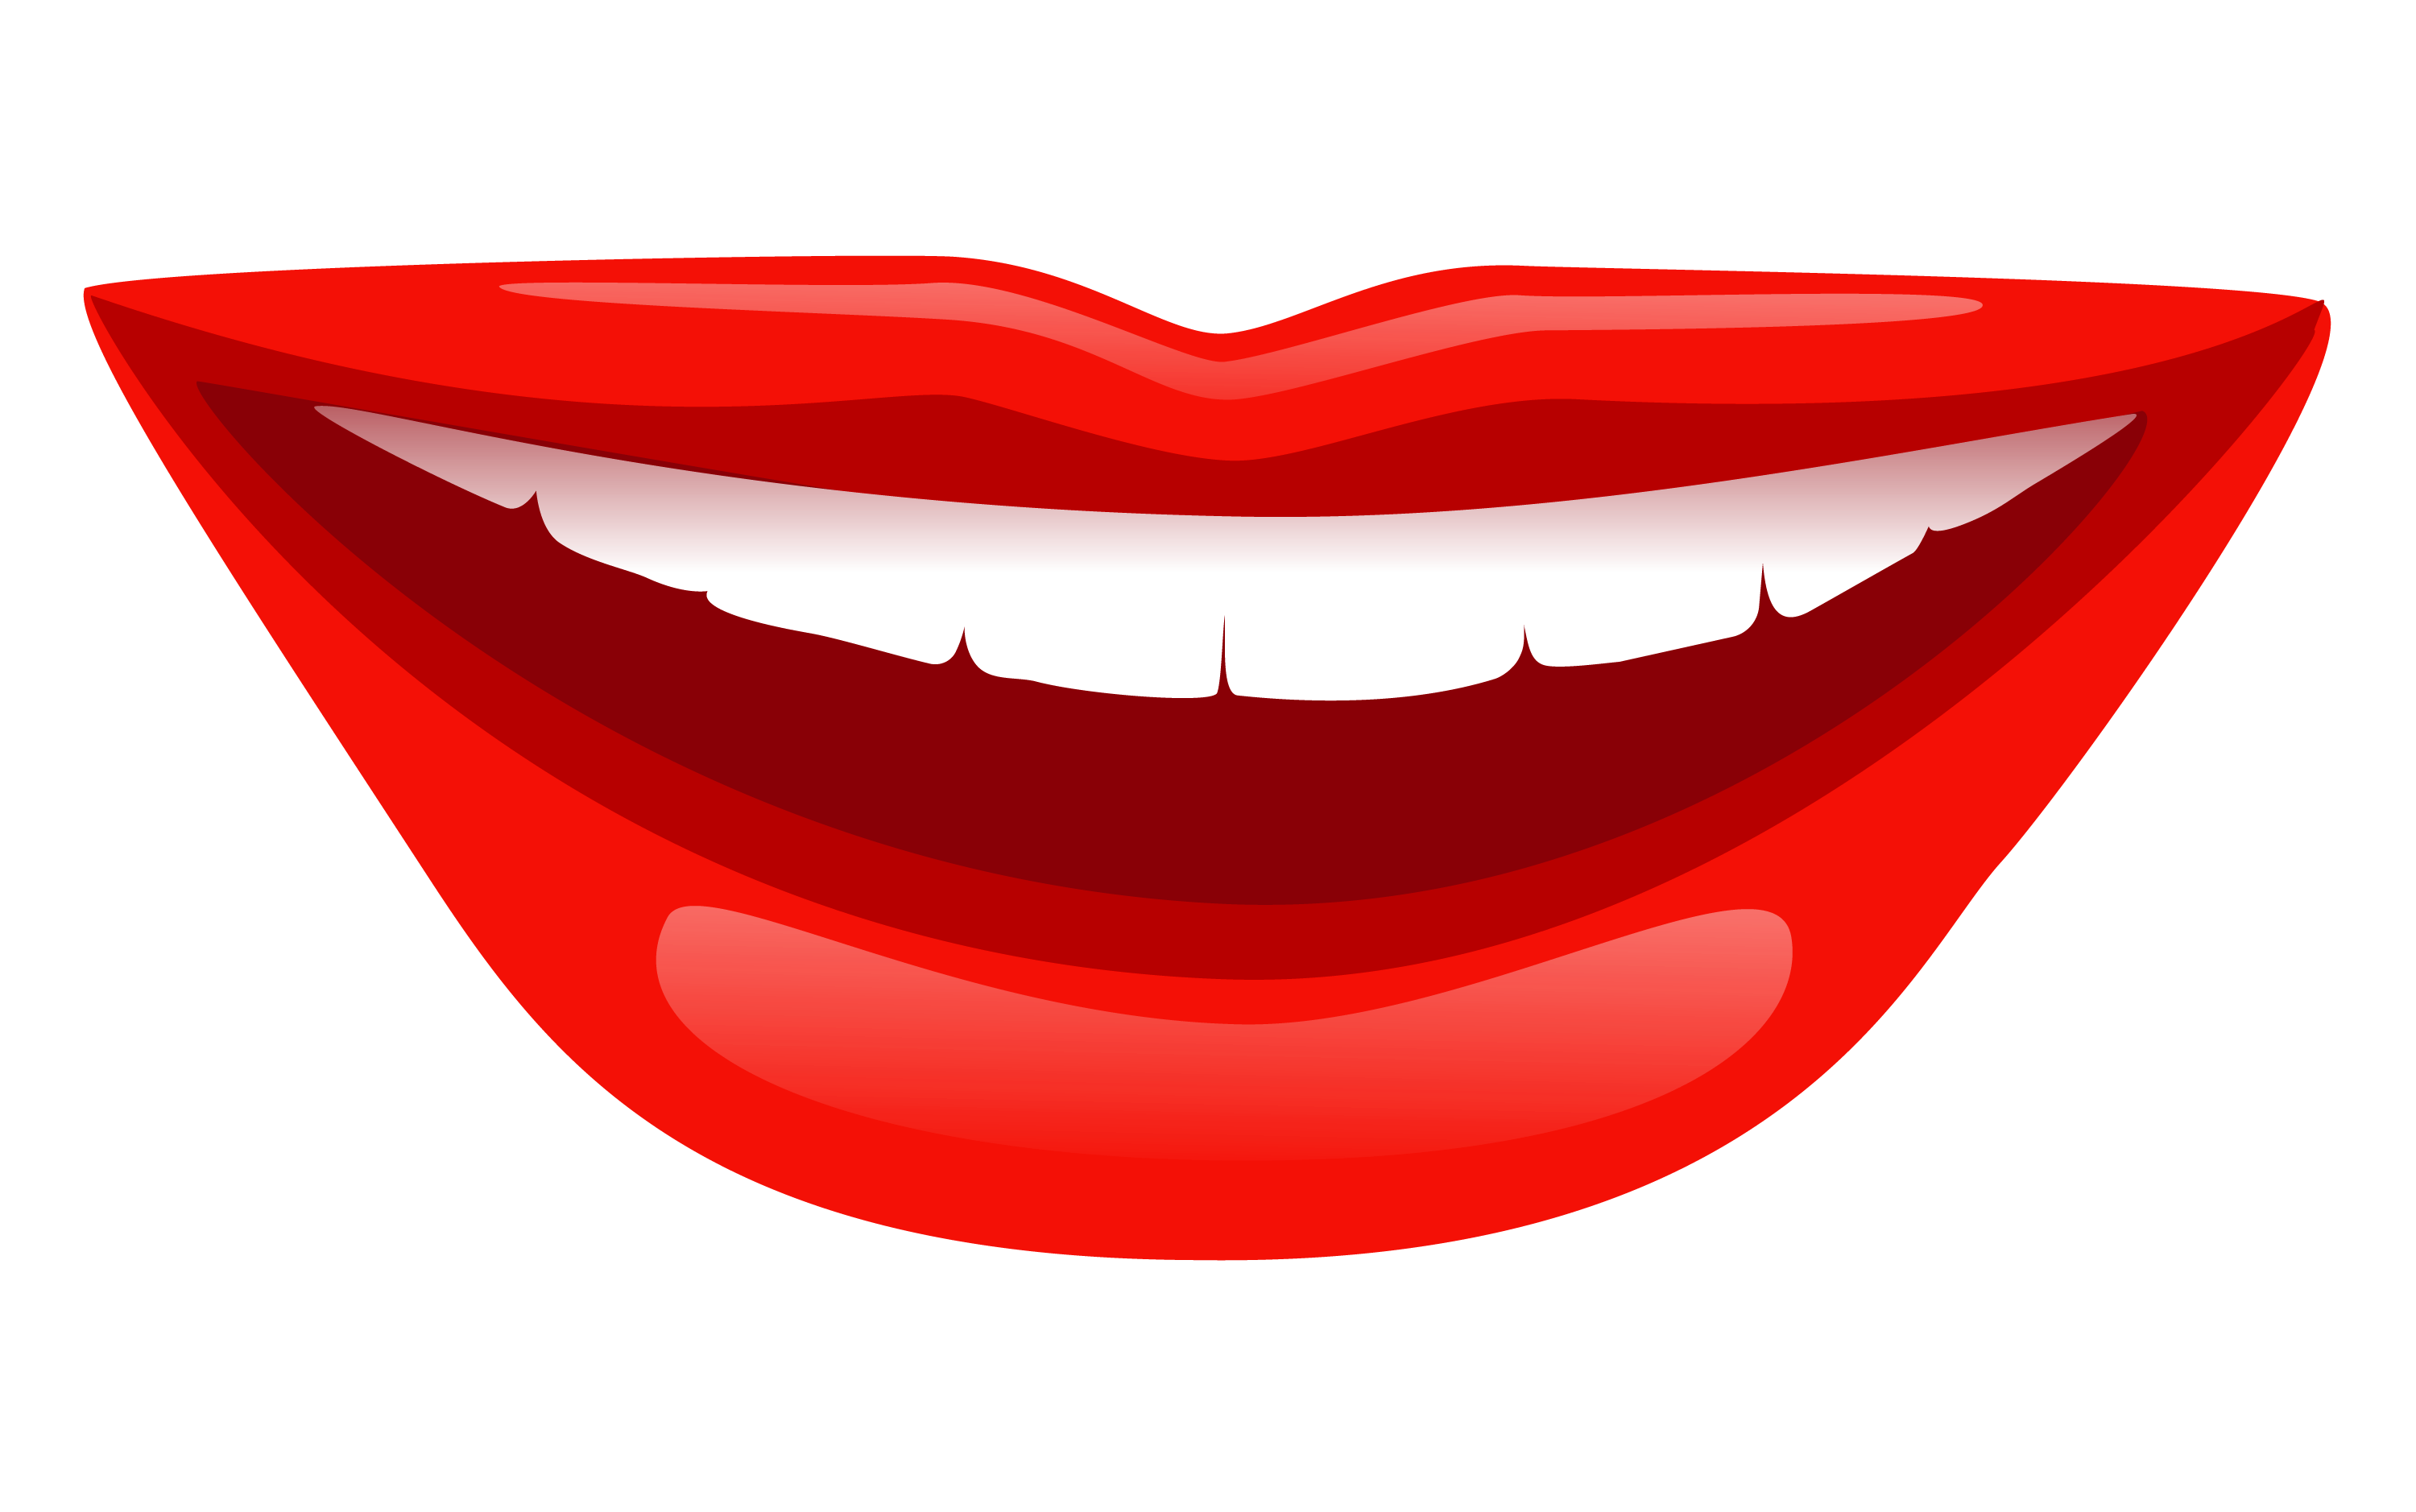 Smile Lips Png Hdpng.com 3000 - Smile Lips, Transparent background PNG HD thumbnail